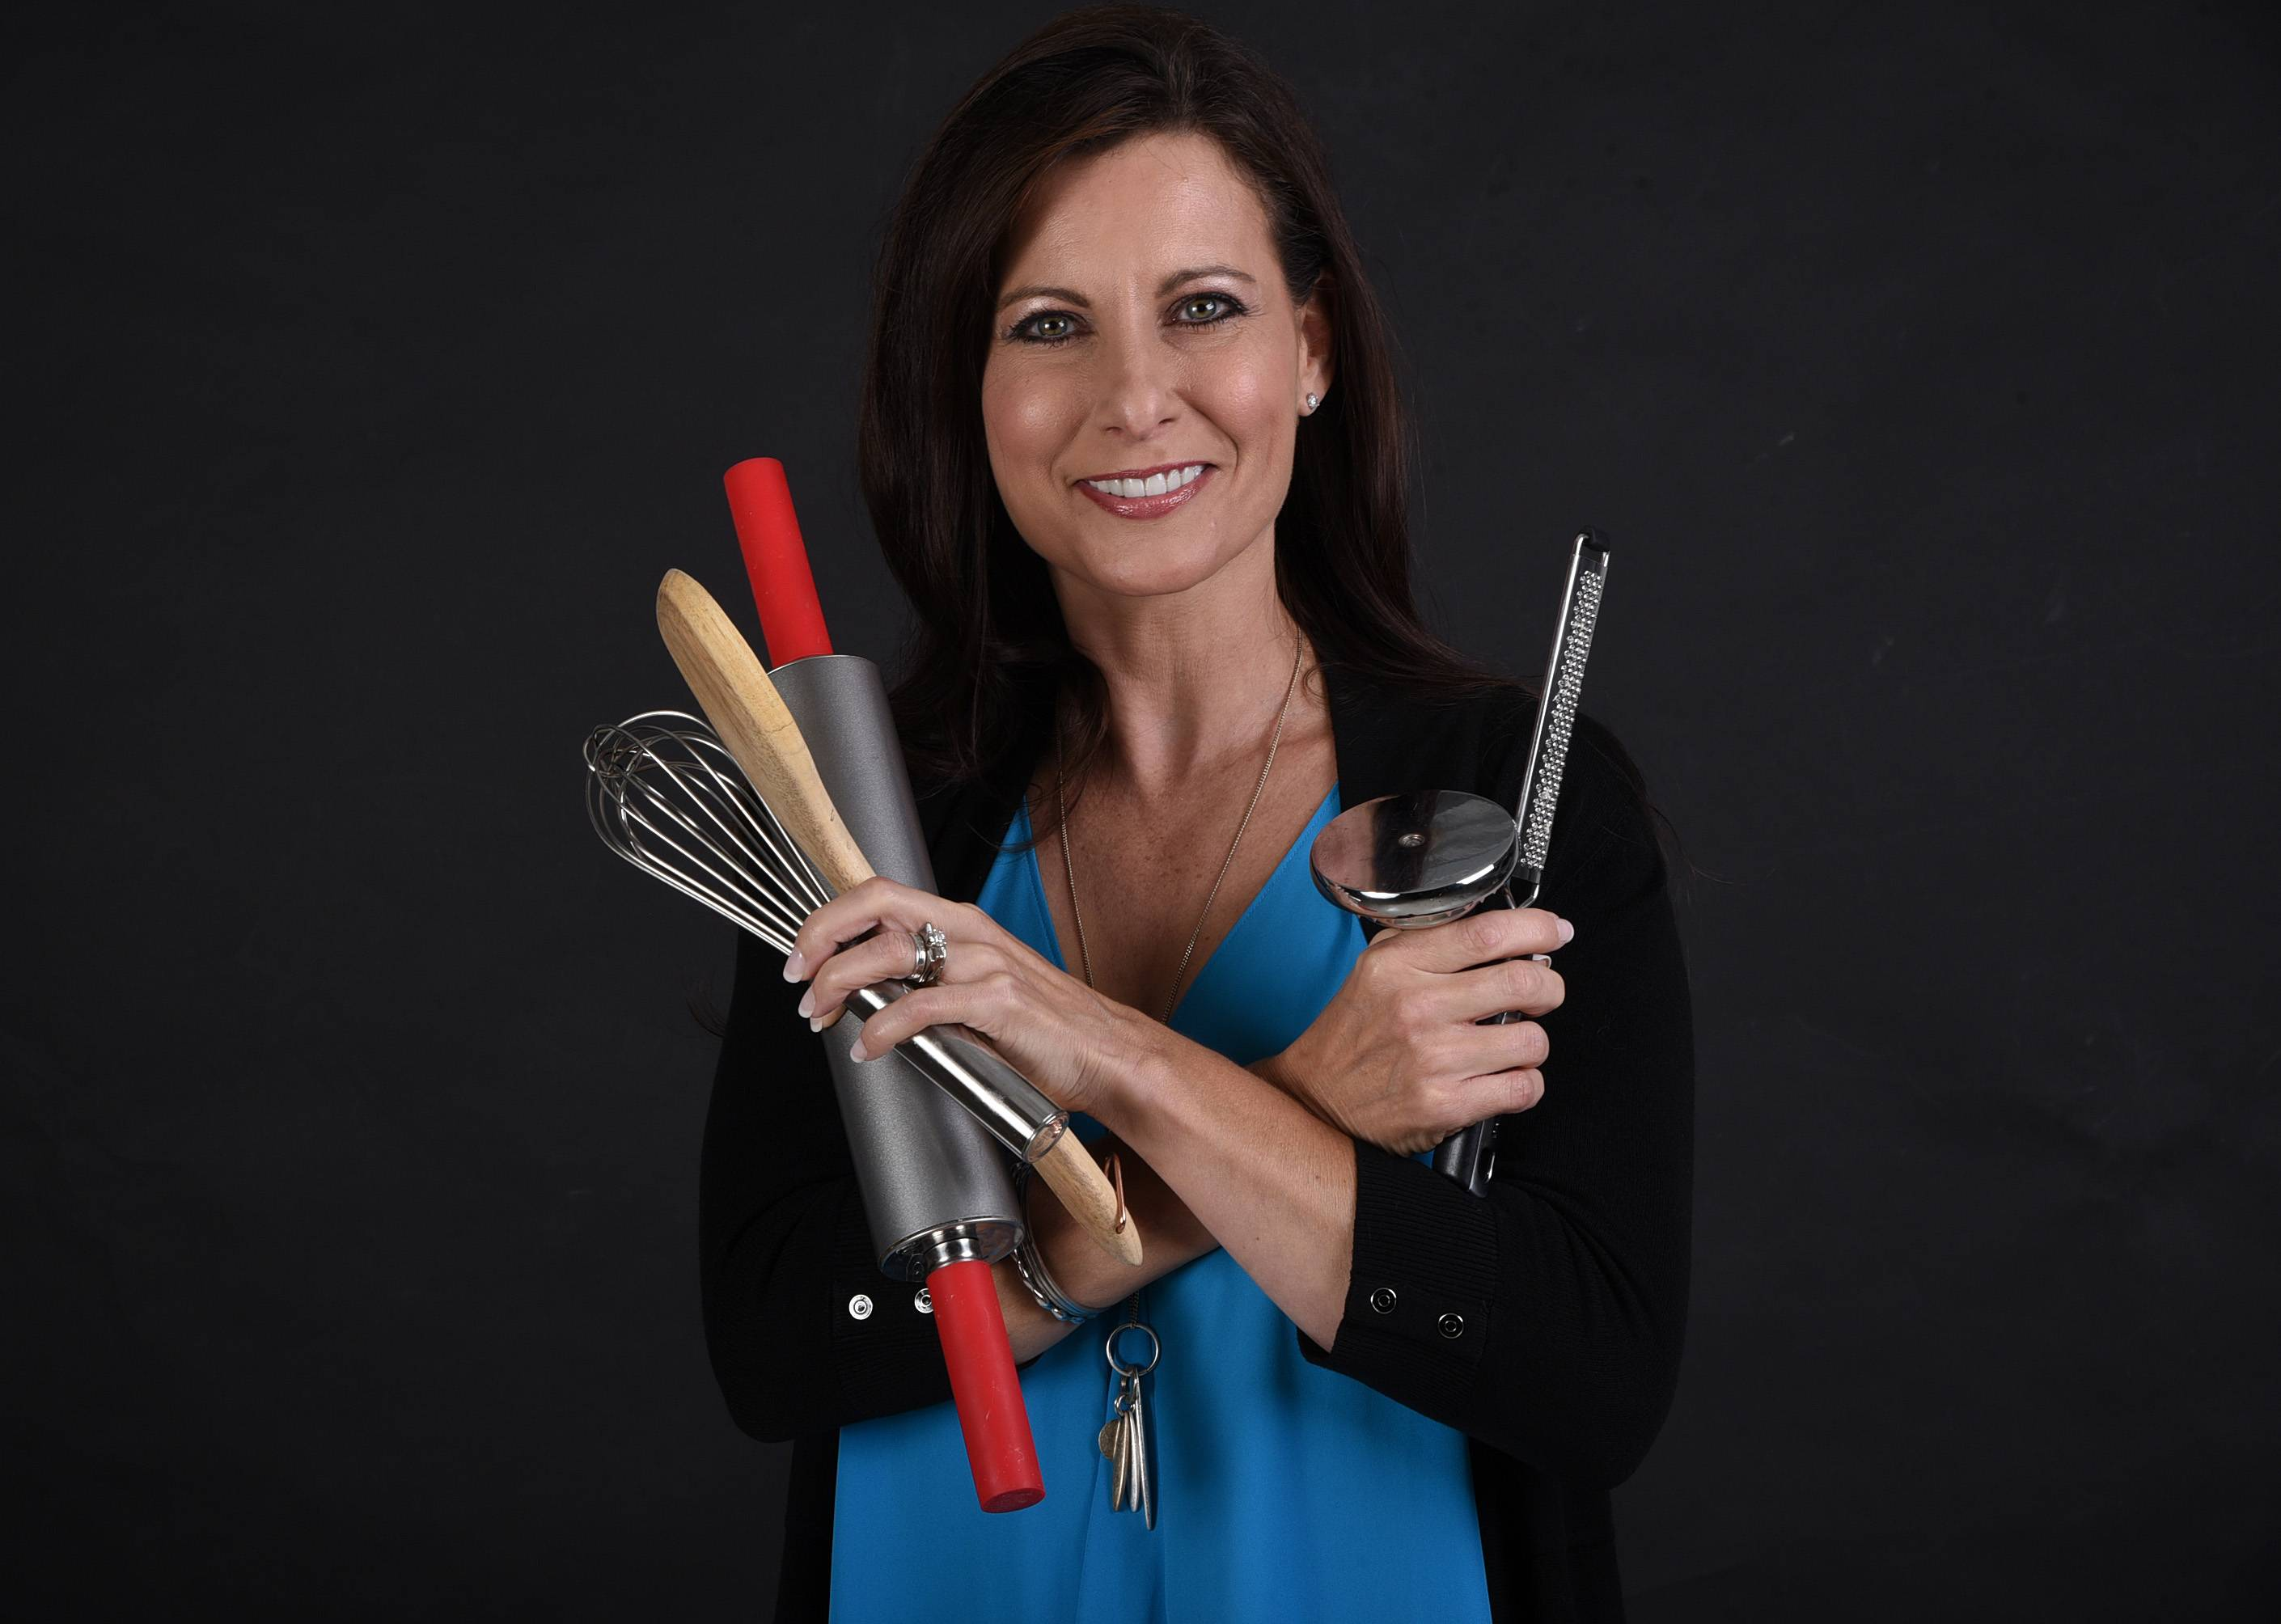 Cook of the Week Challenge finalist Elizabeth Schuttler of Inverness has cooking tools at the ready for the Monday, Nov. 13, live cook-off.